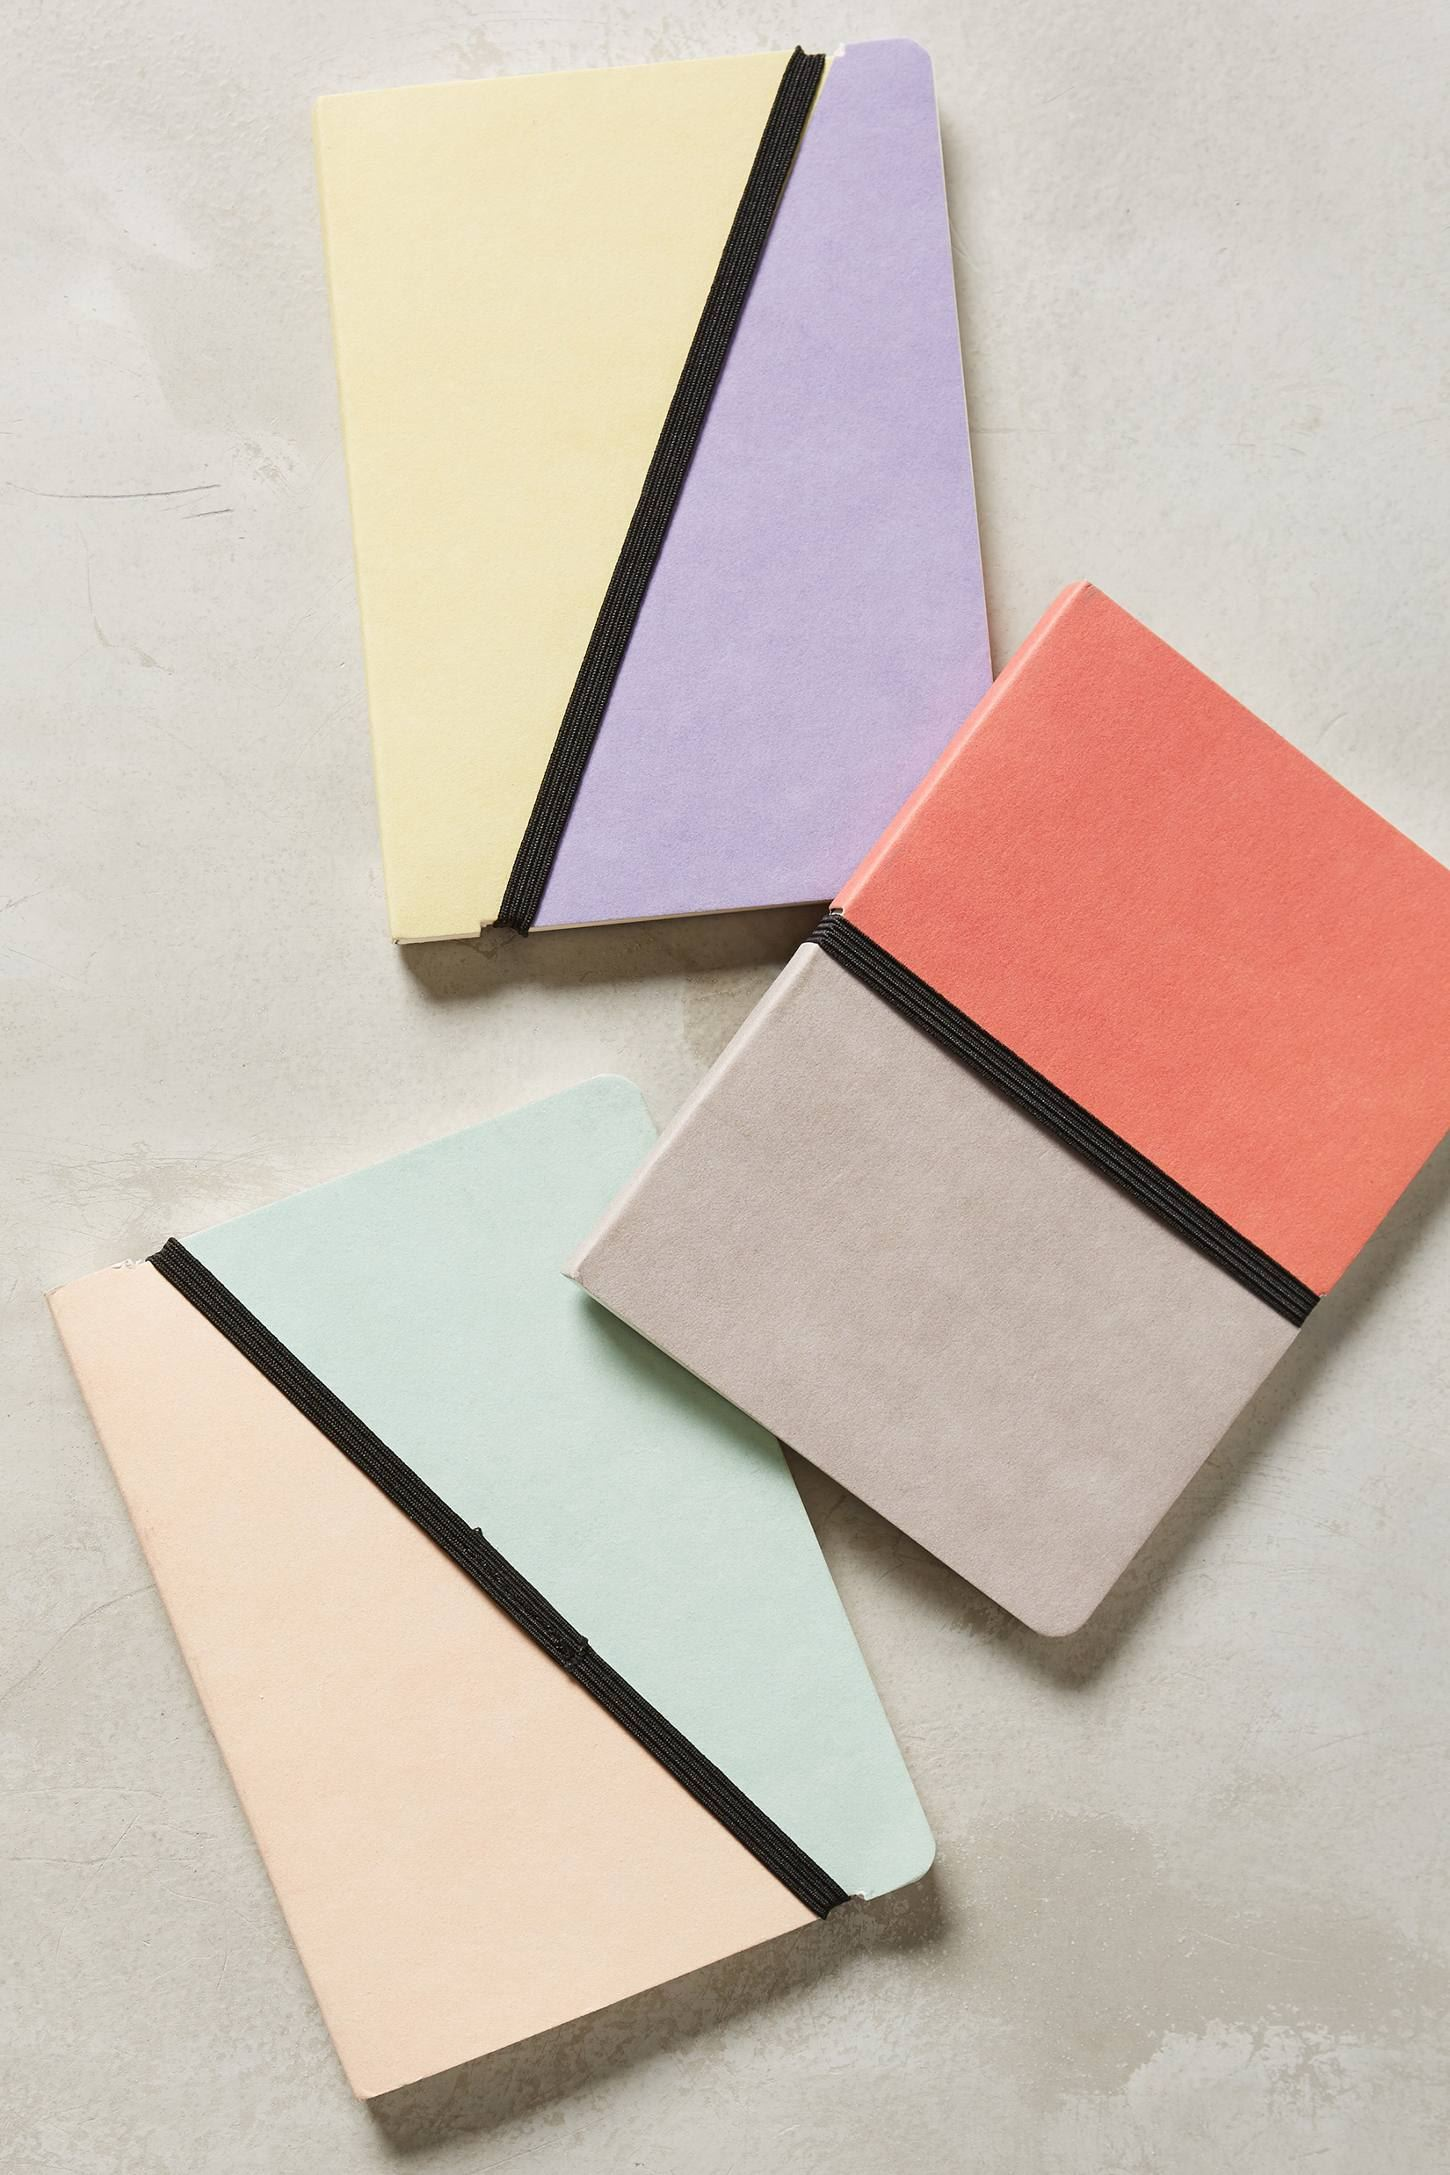 Stylish notebooks from Anthropologie